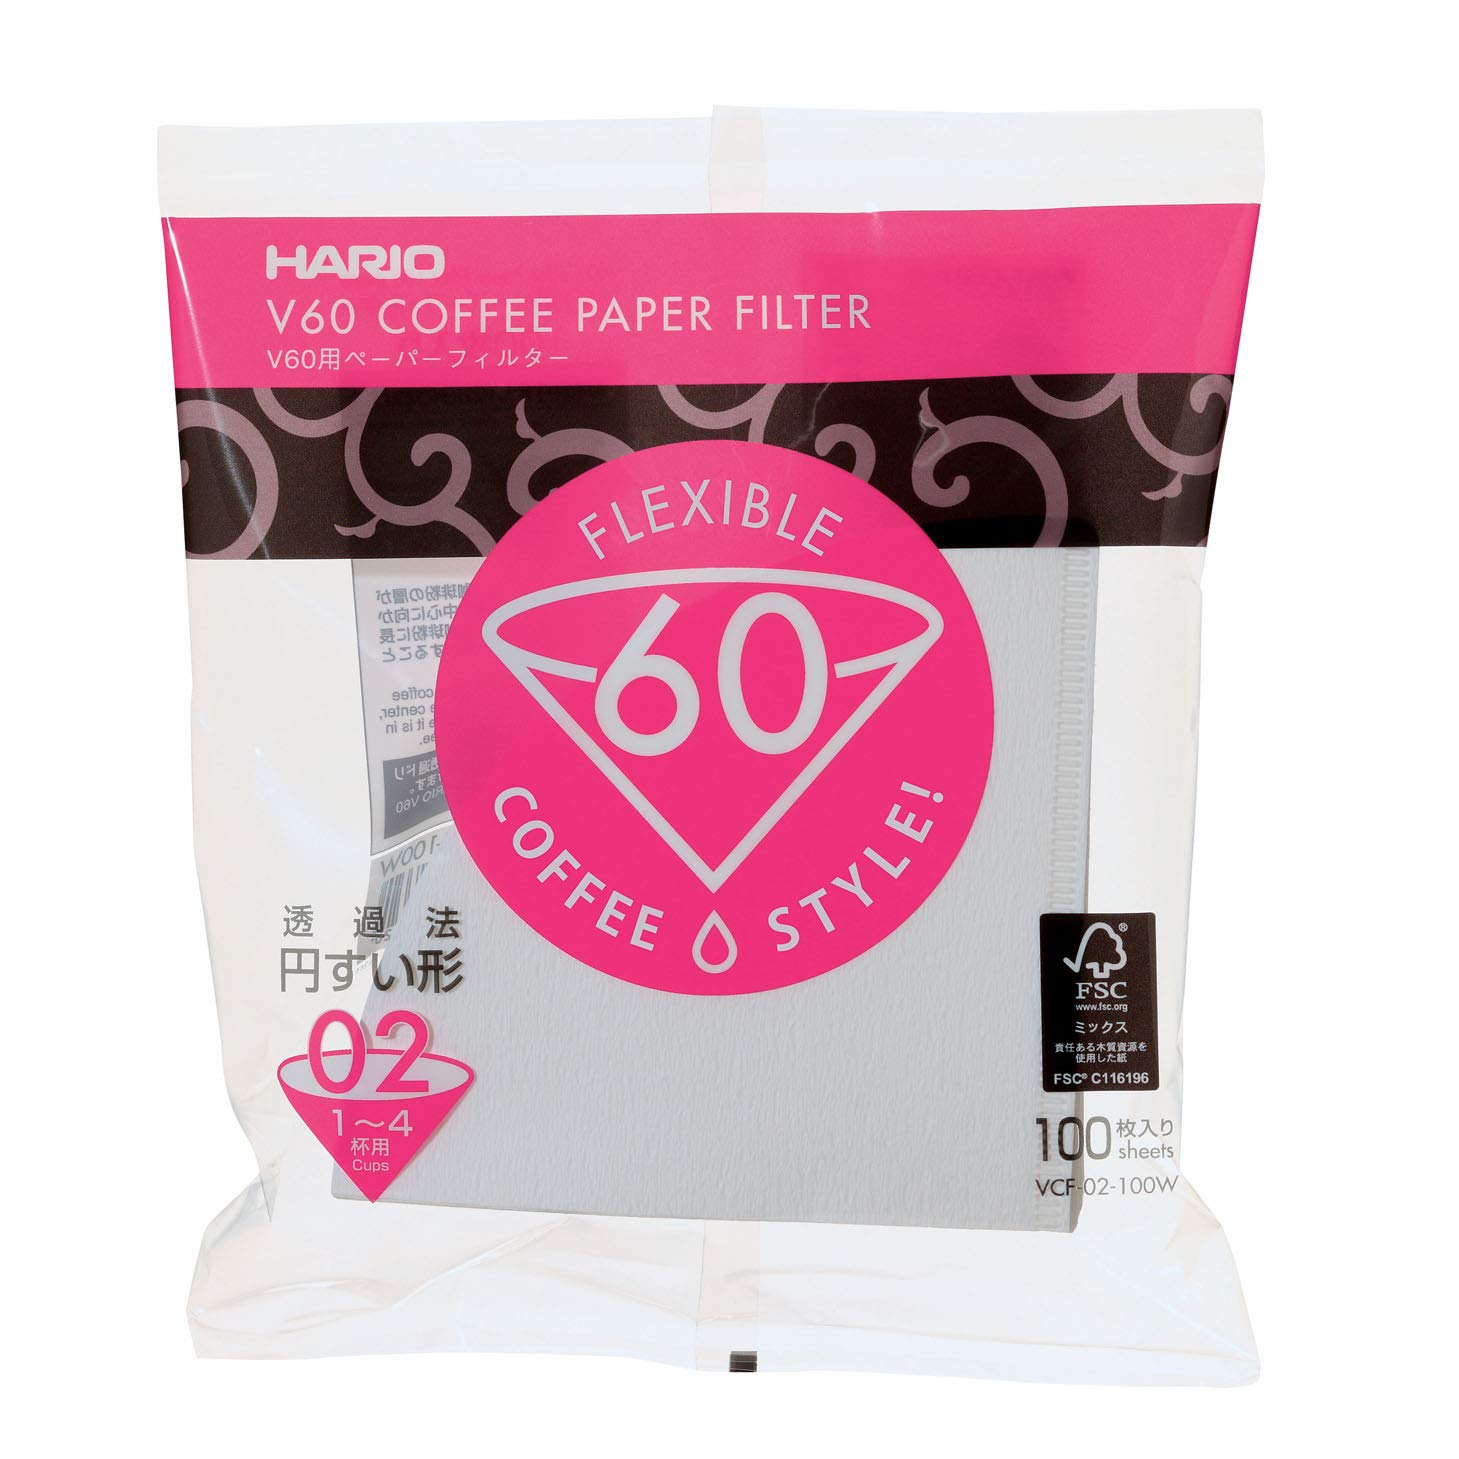 Hario V60 Paper Coffee Filters, Size 02, 100 Count, White VCF-02-100W